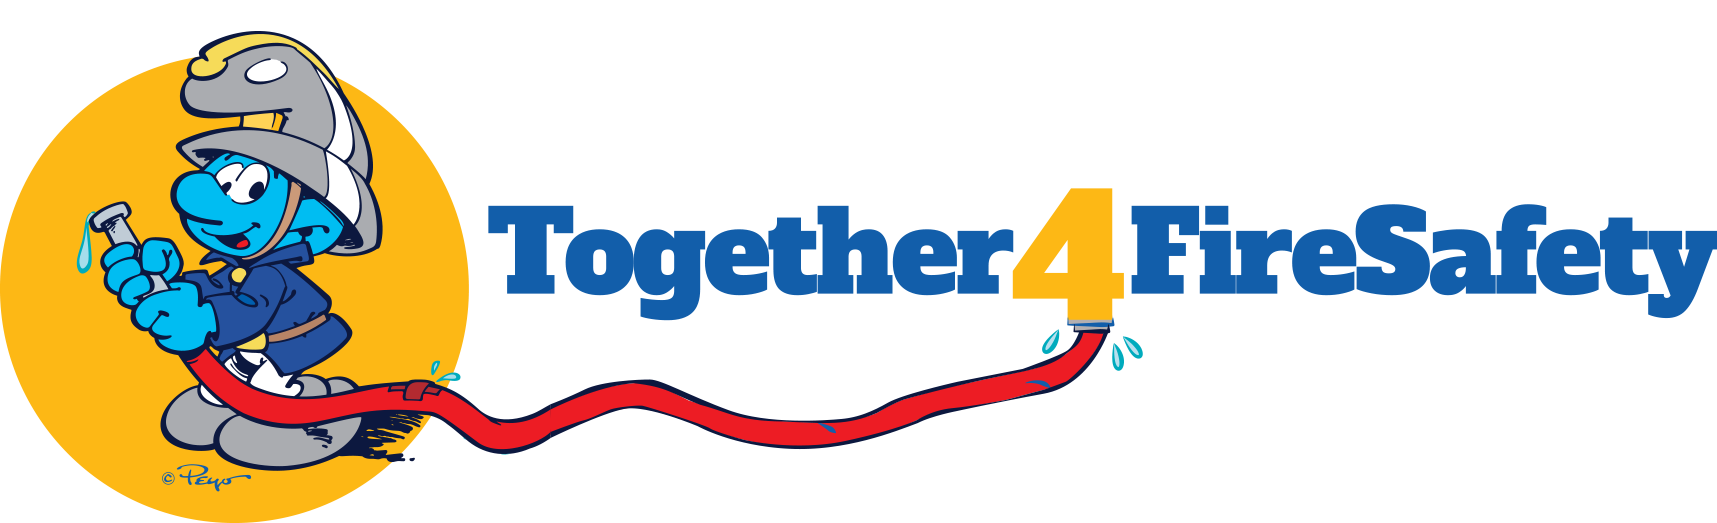 Together4FireSafety logo